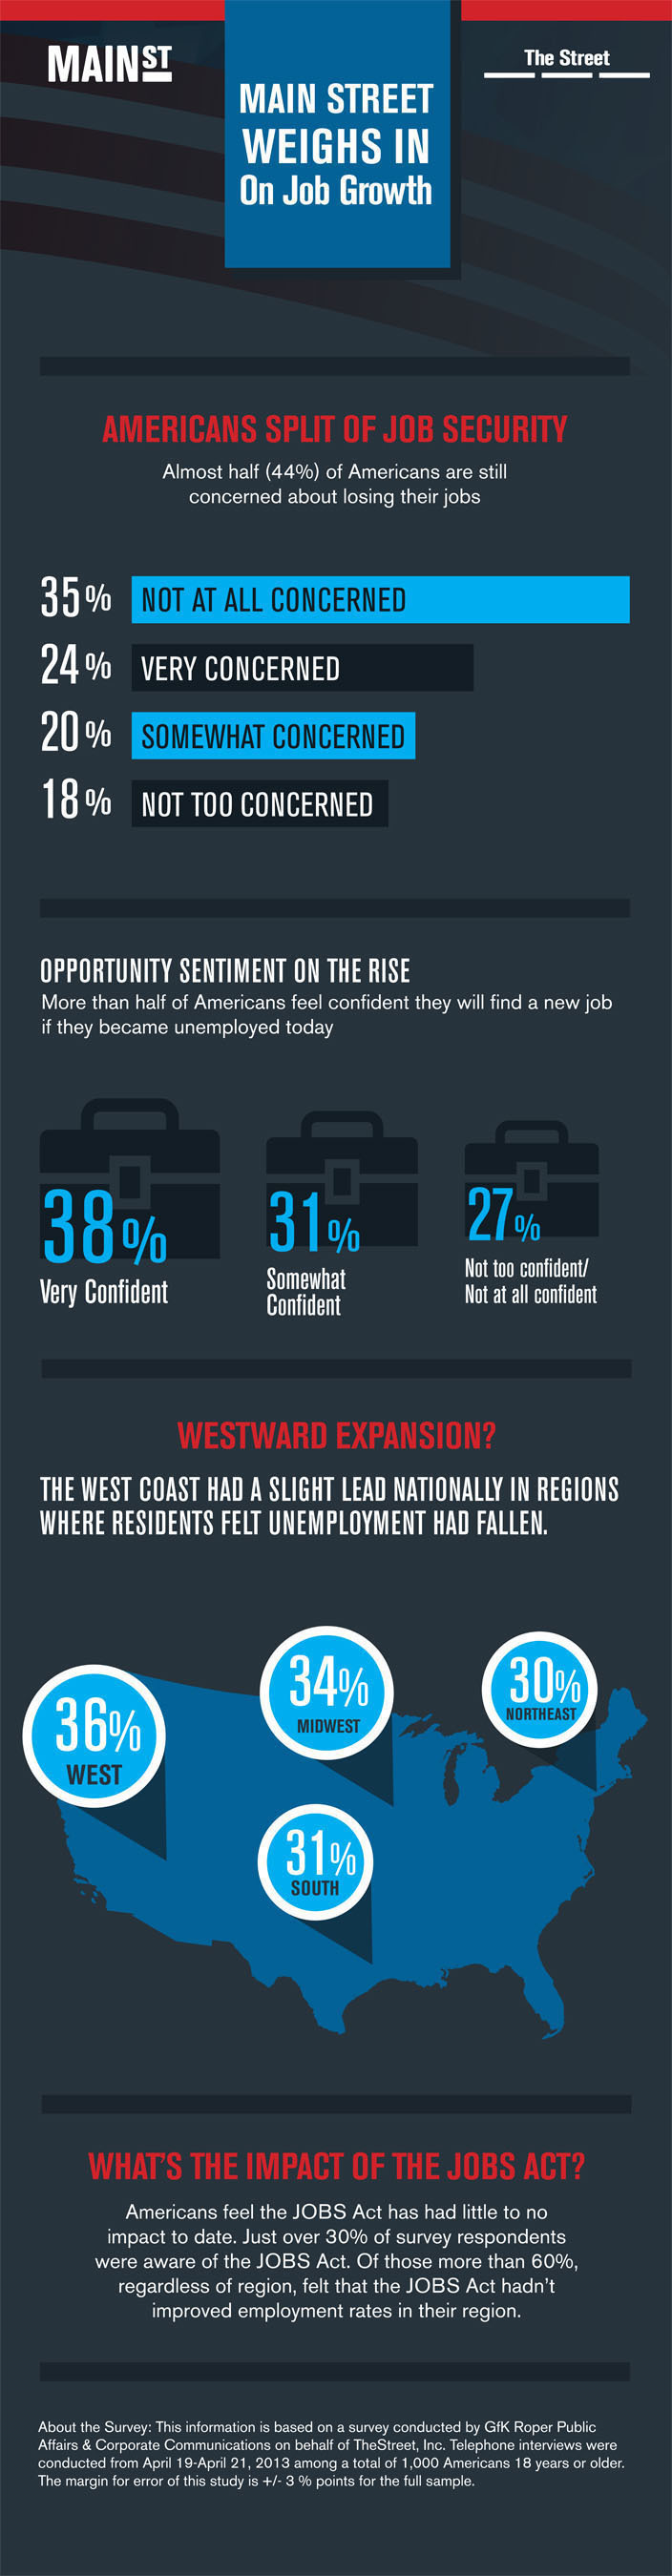 Americans weigh in on job market.  (PRNewsFoto/TheStreet, Inc.)